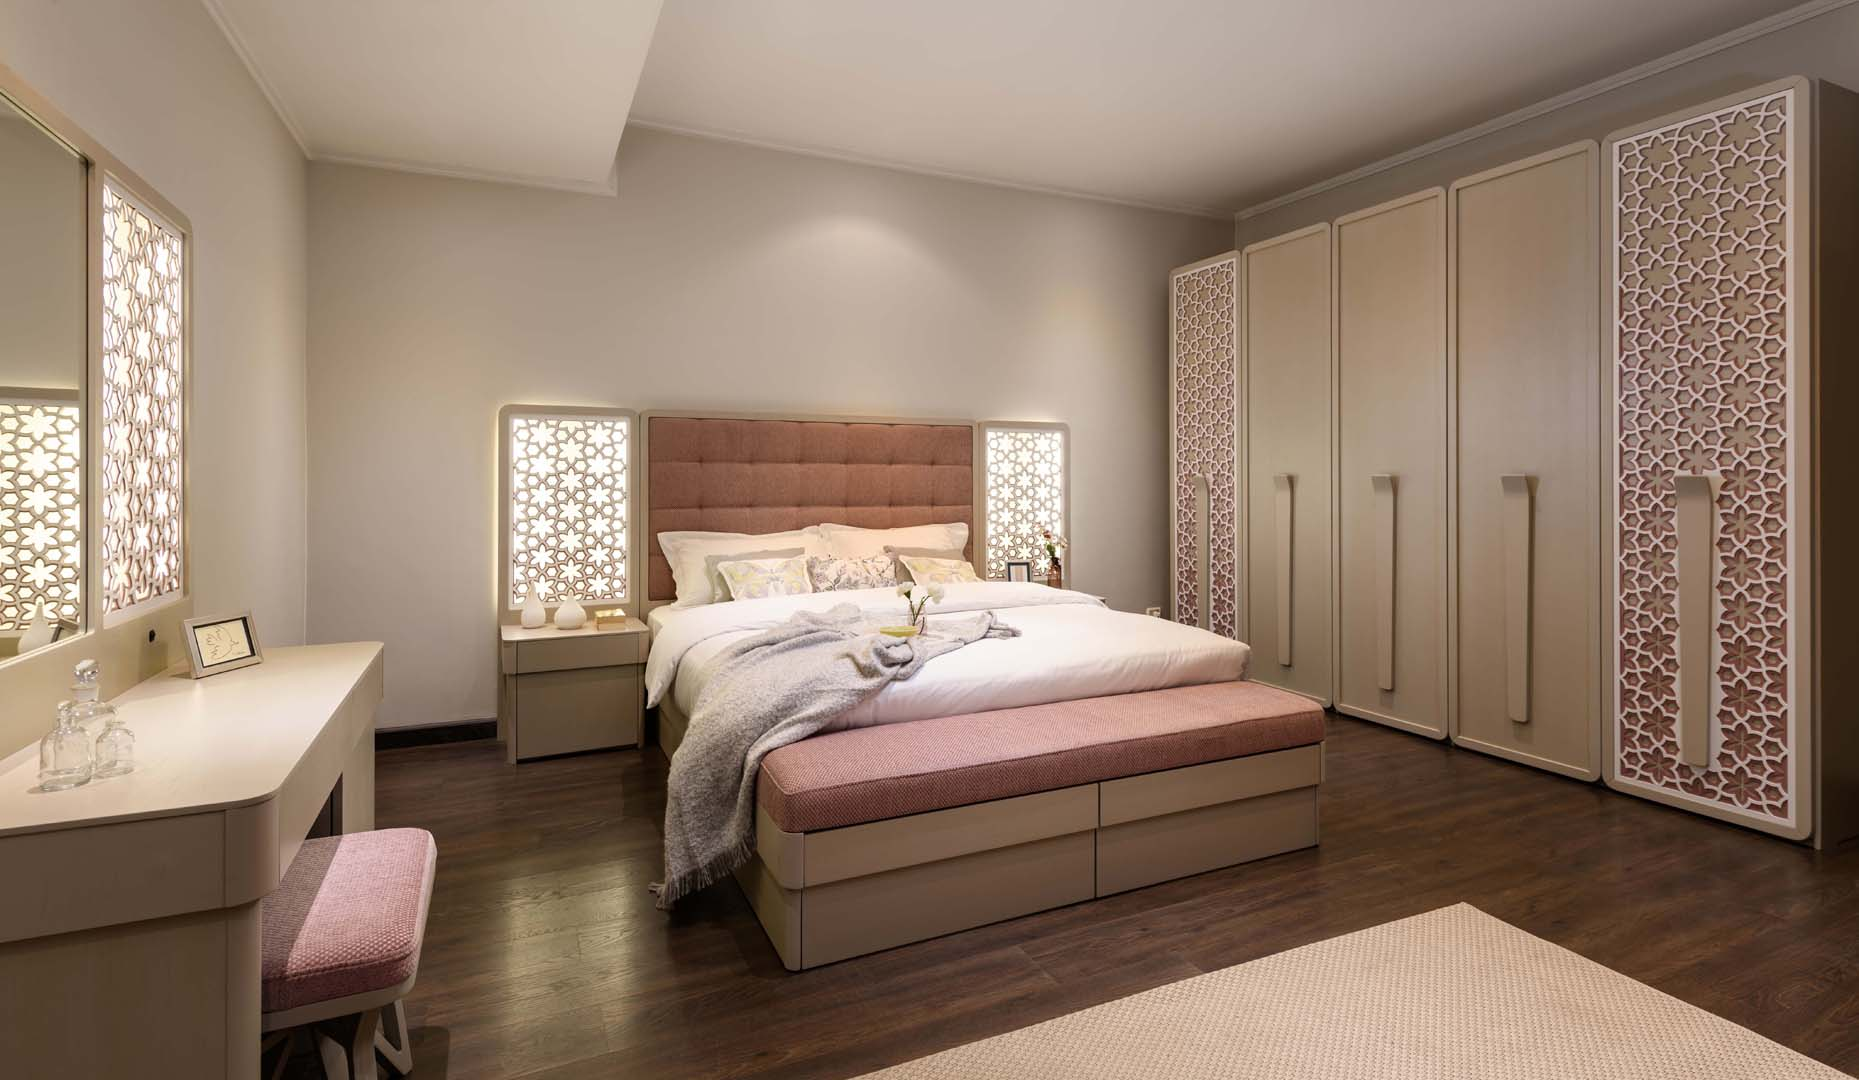 Andalusia master bed 180